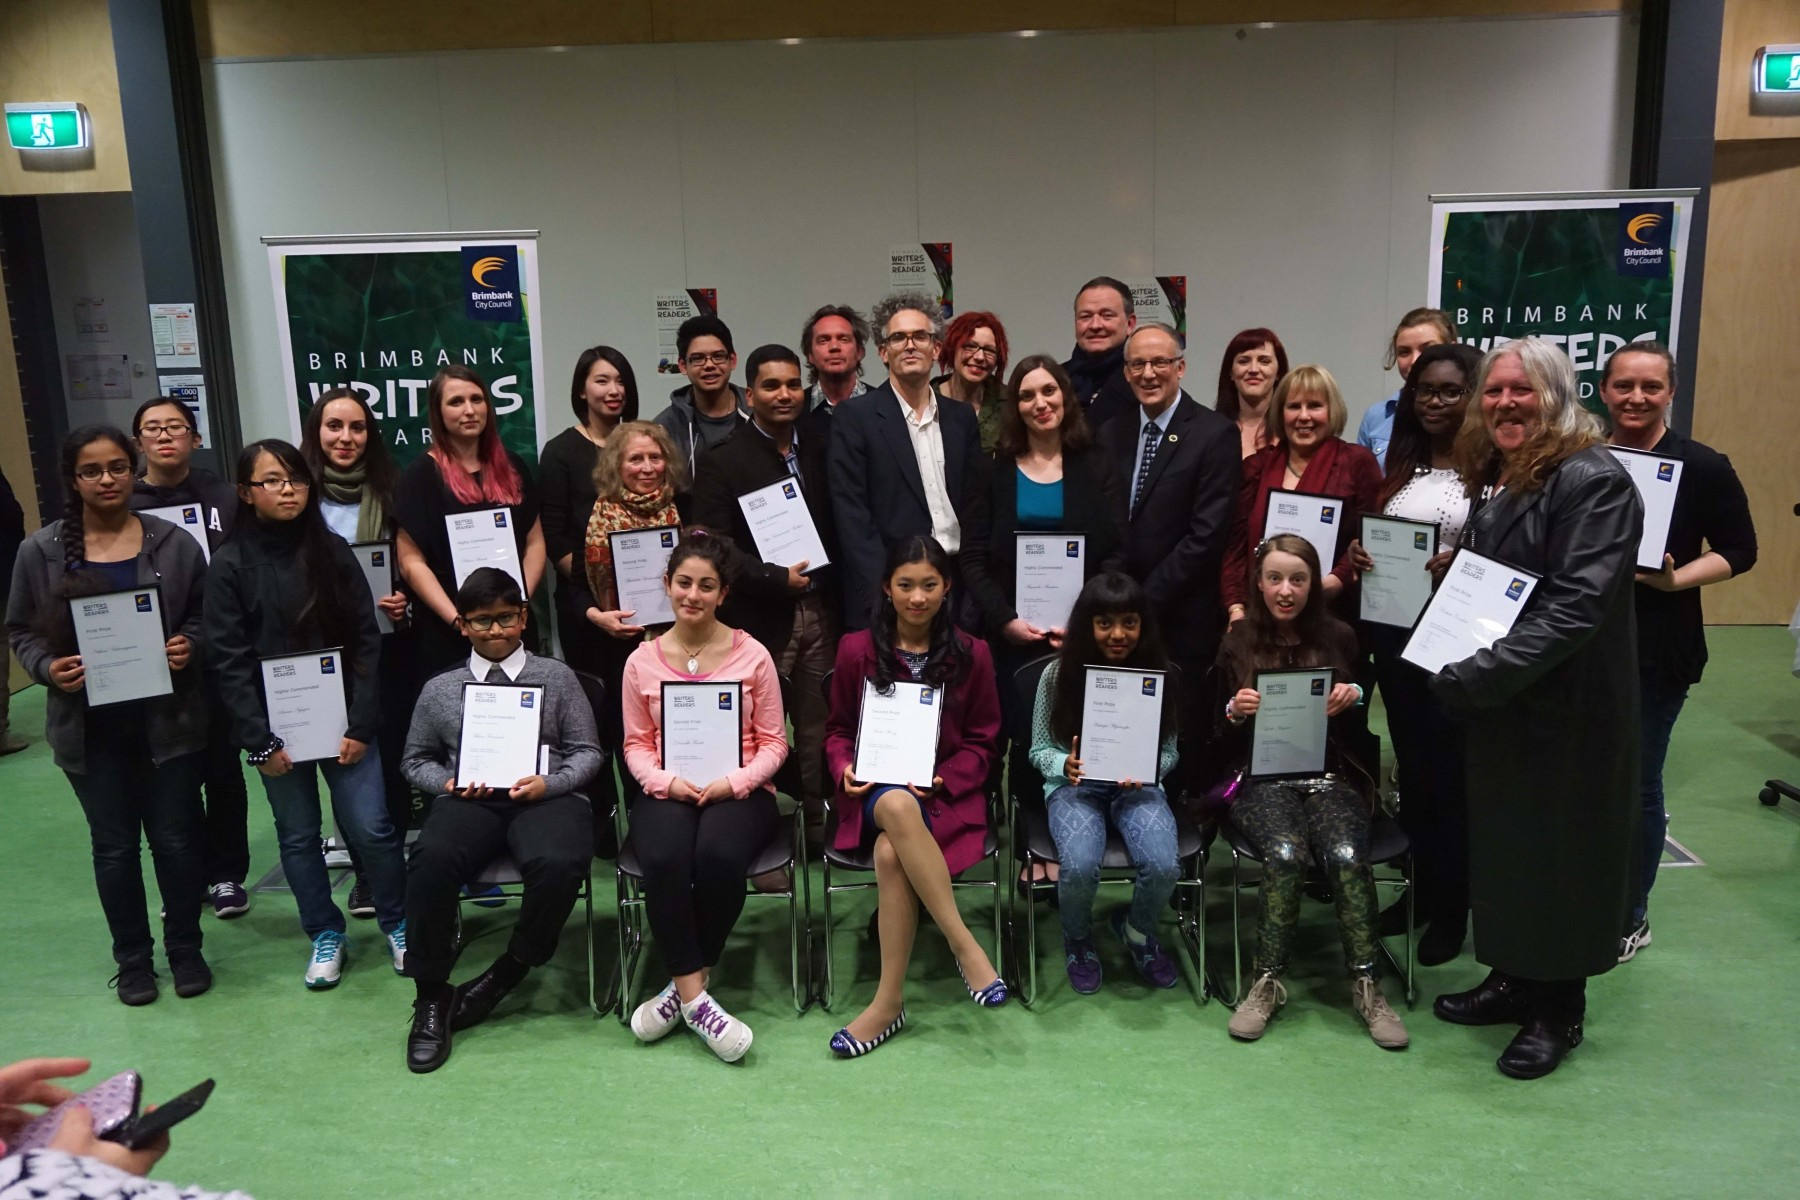 2014 Brimbank Writers Awards Ceremony 15 September